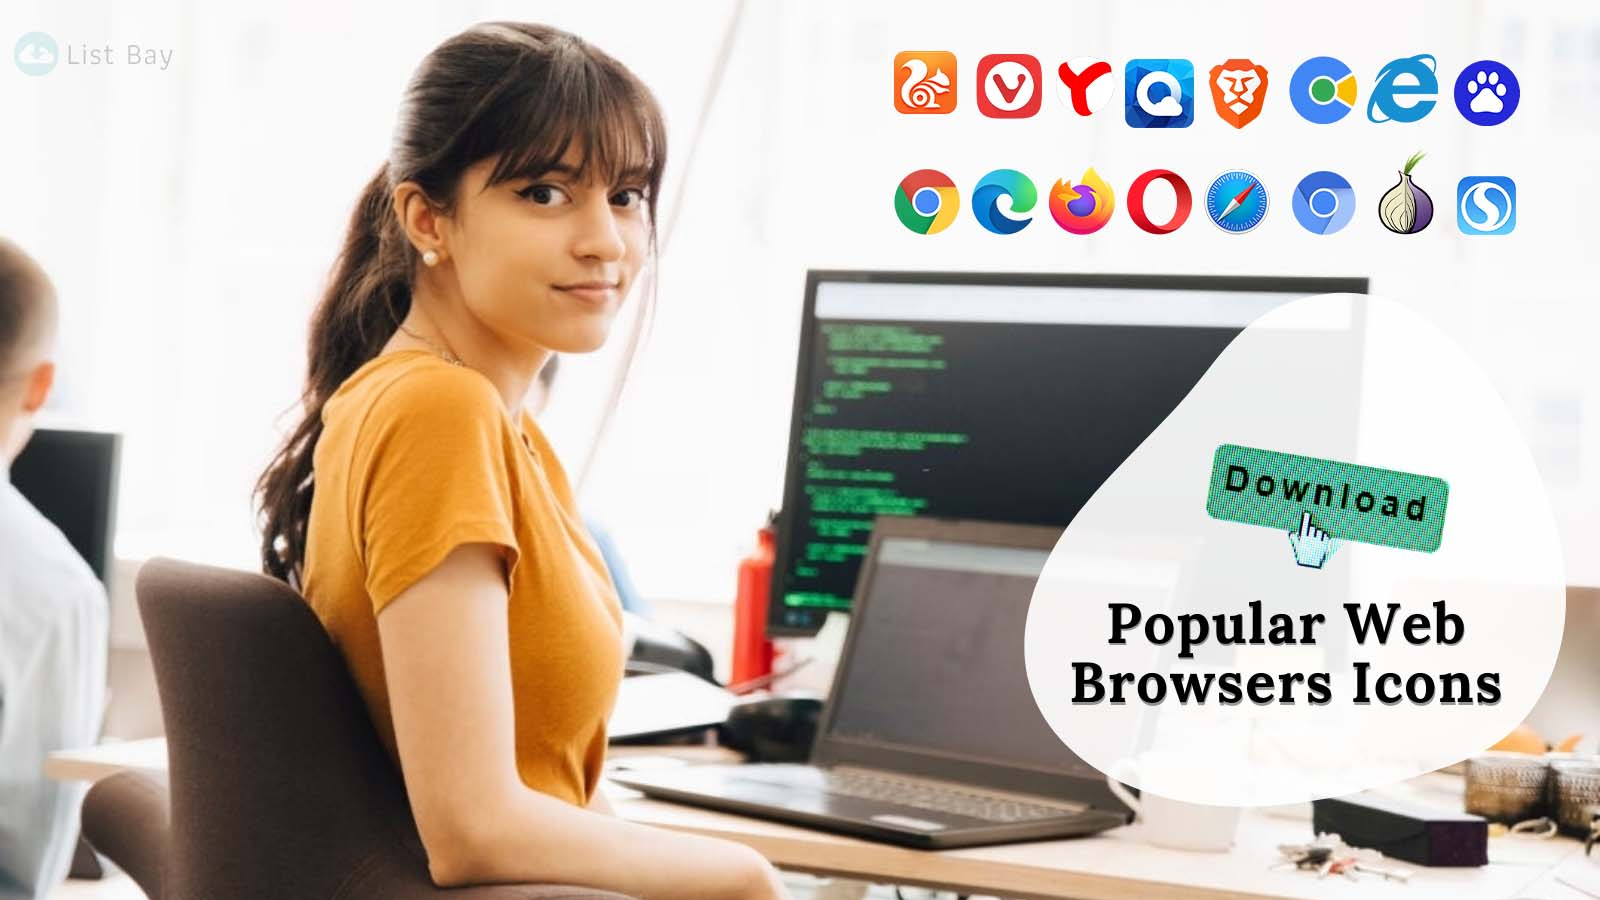 Popular Internet Browser Icons - Download Web Browsers Logos